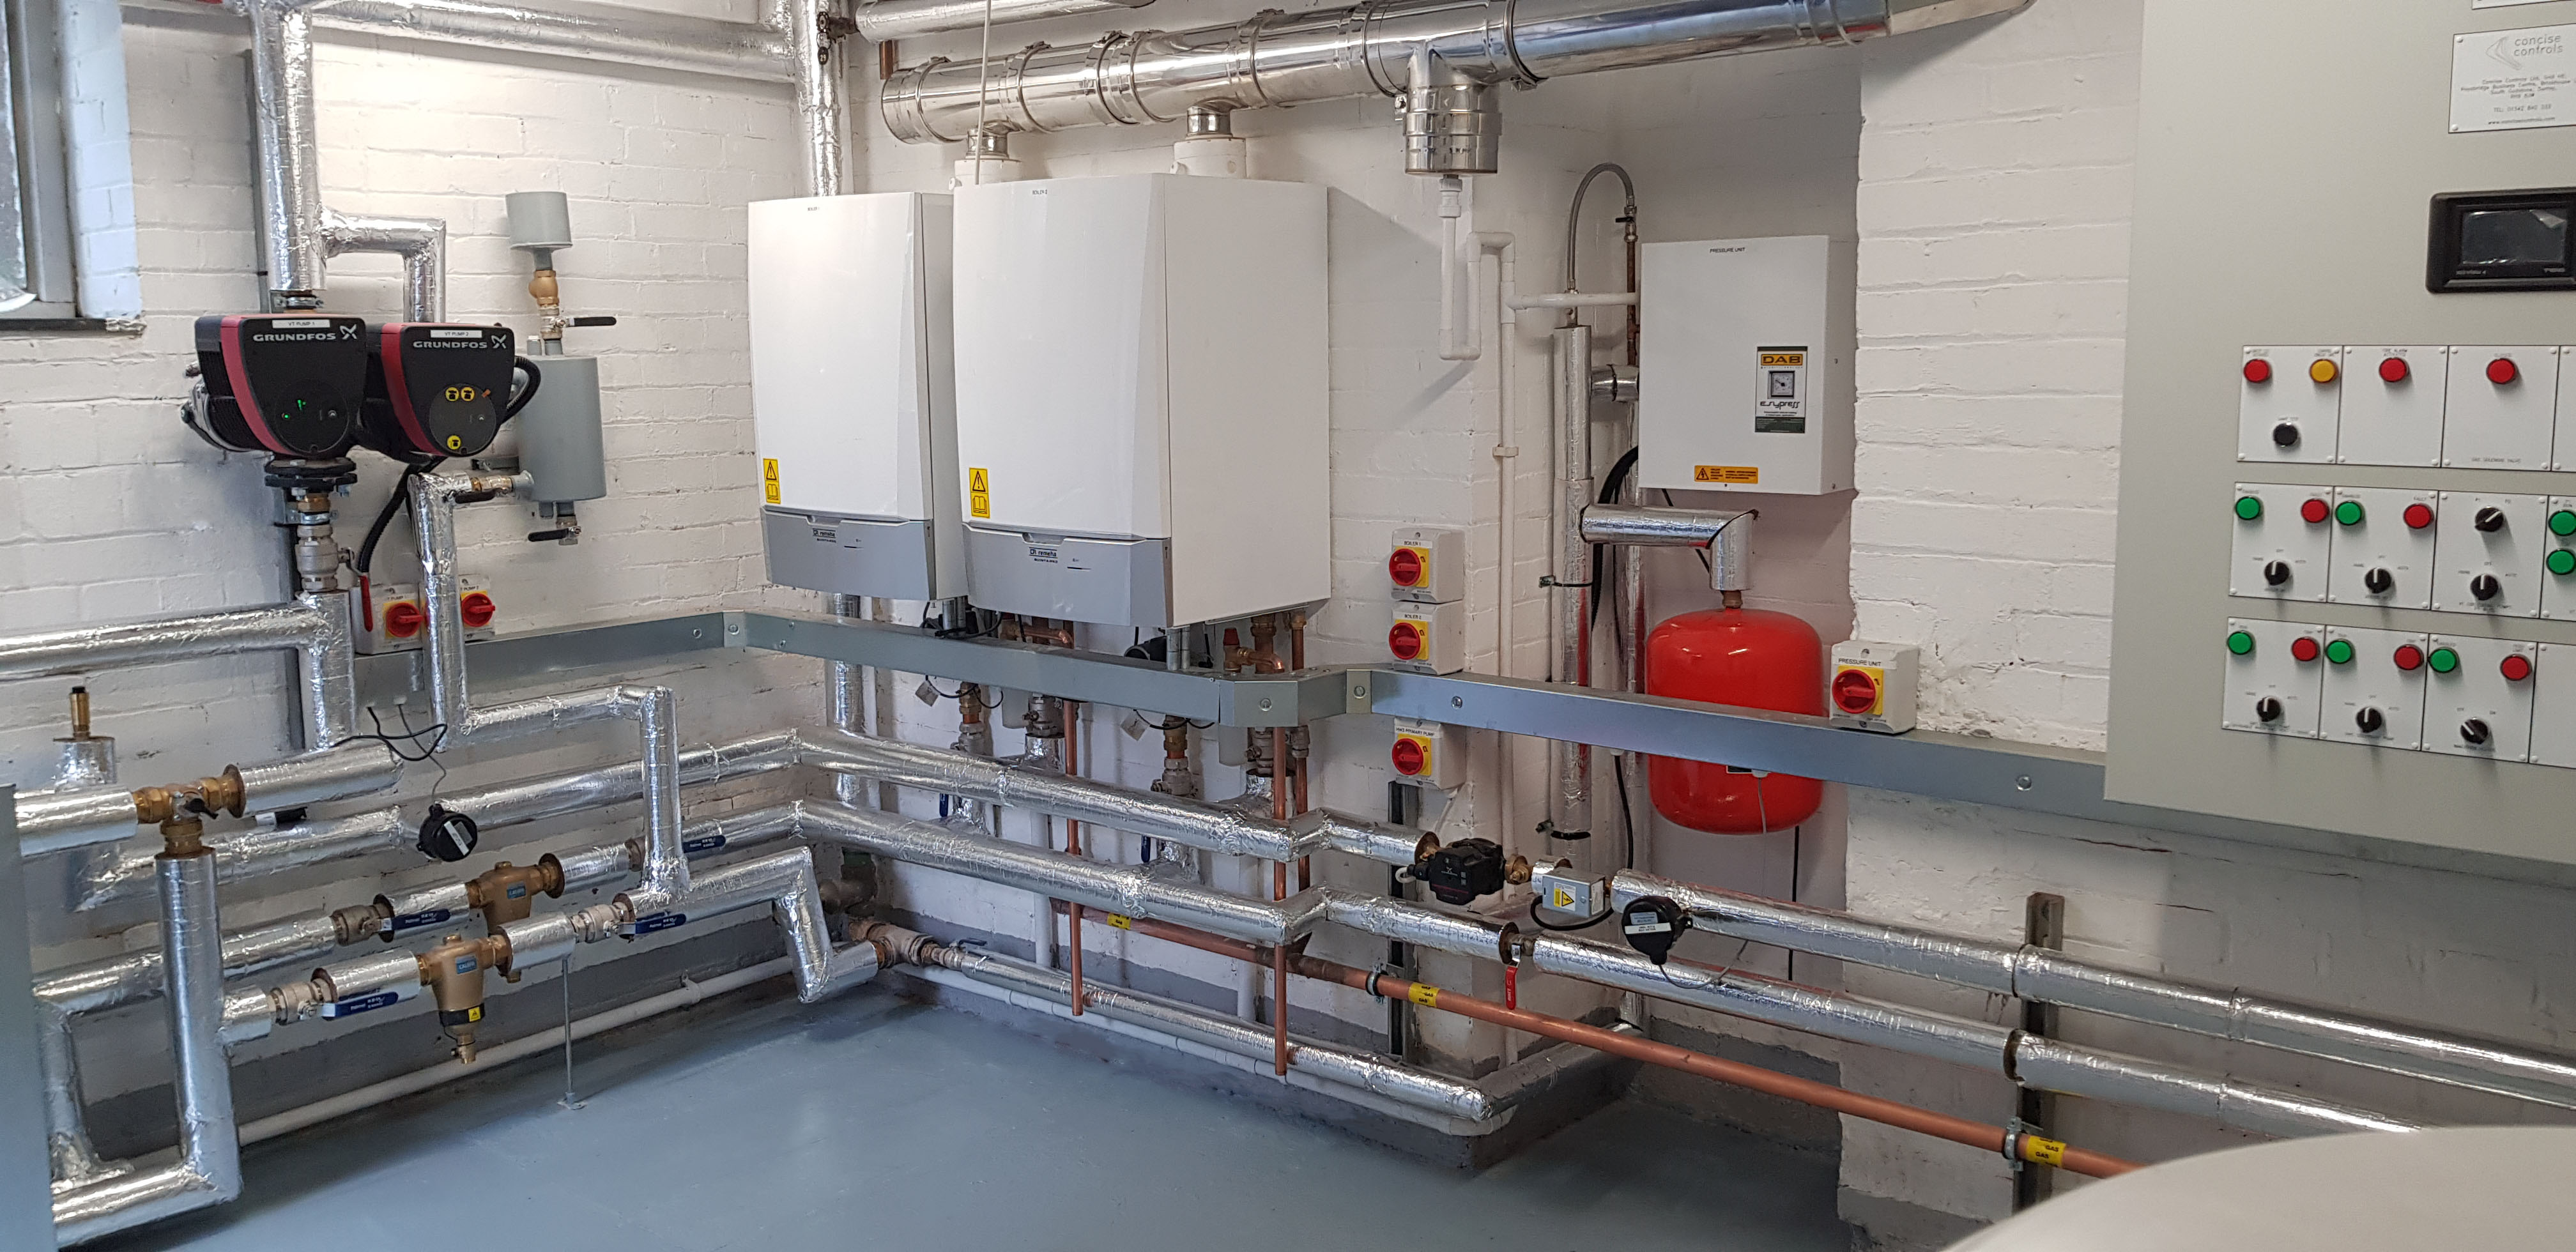 Plant Room Refurbishment for NHS Surrey and Borders Trust